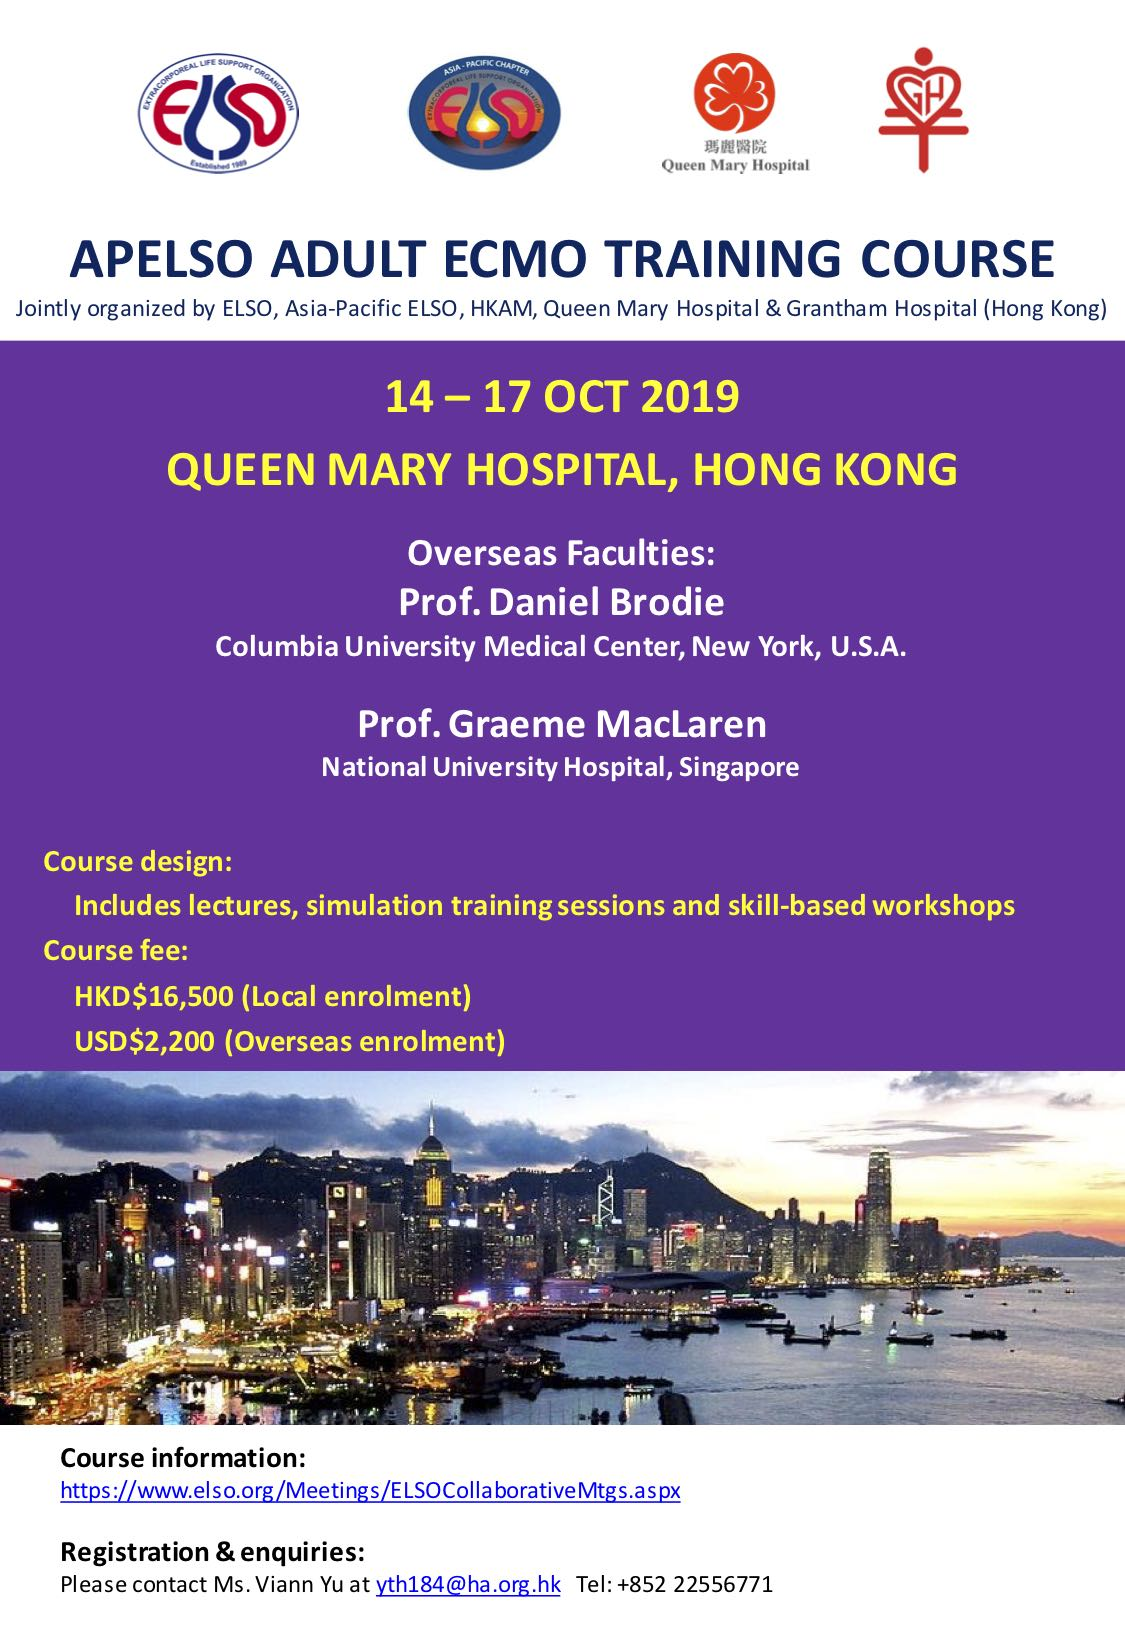 2019 6th APELSO Adult ECMO Training Course poster